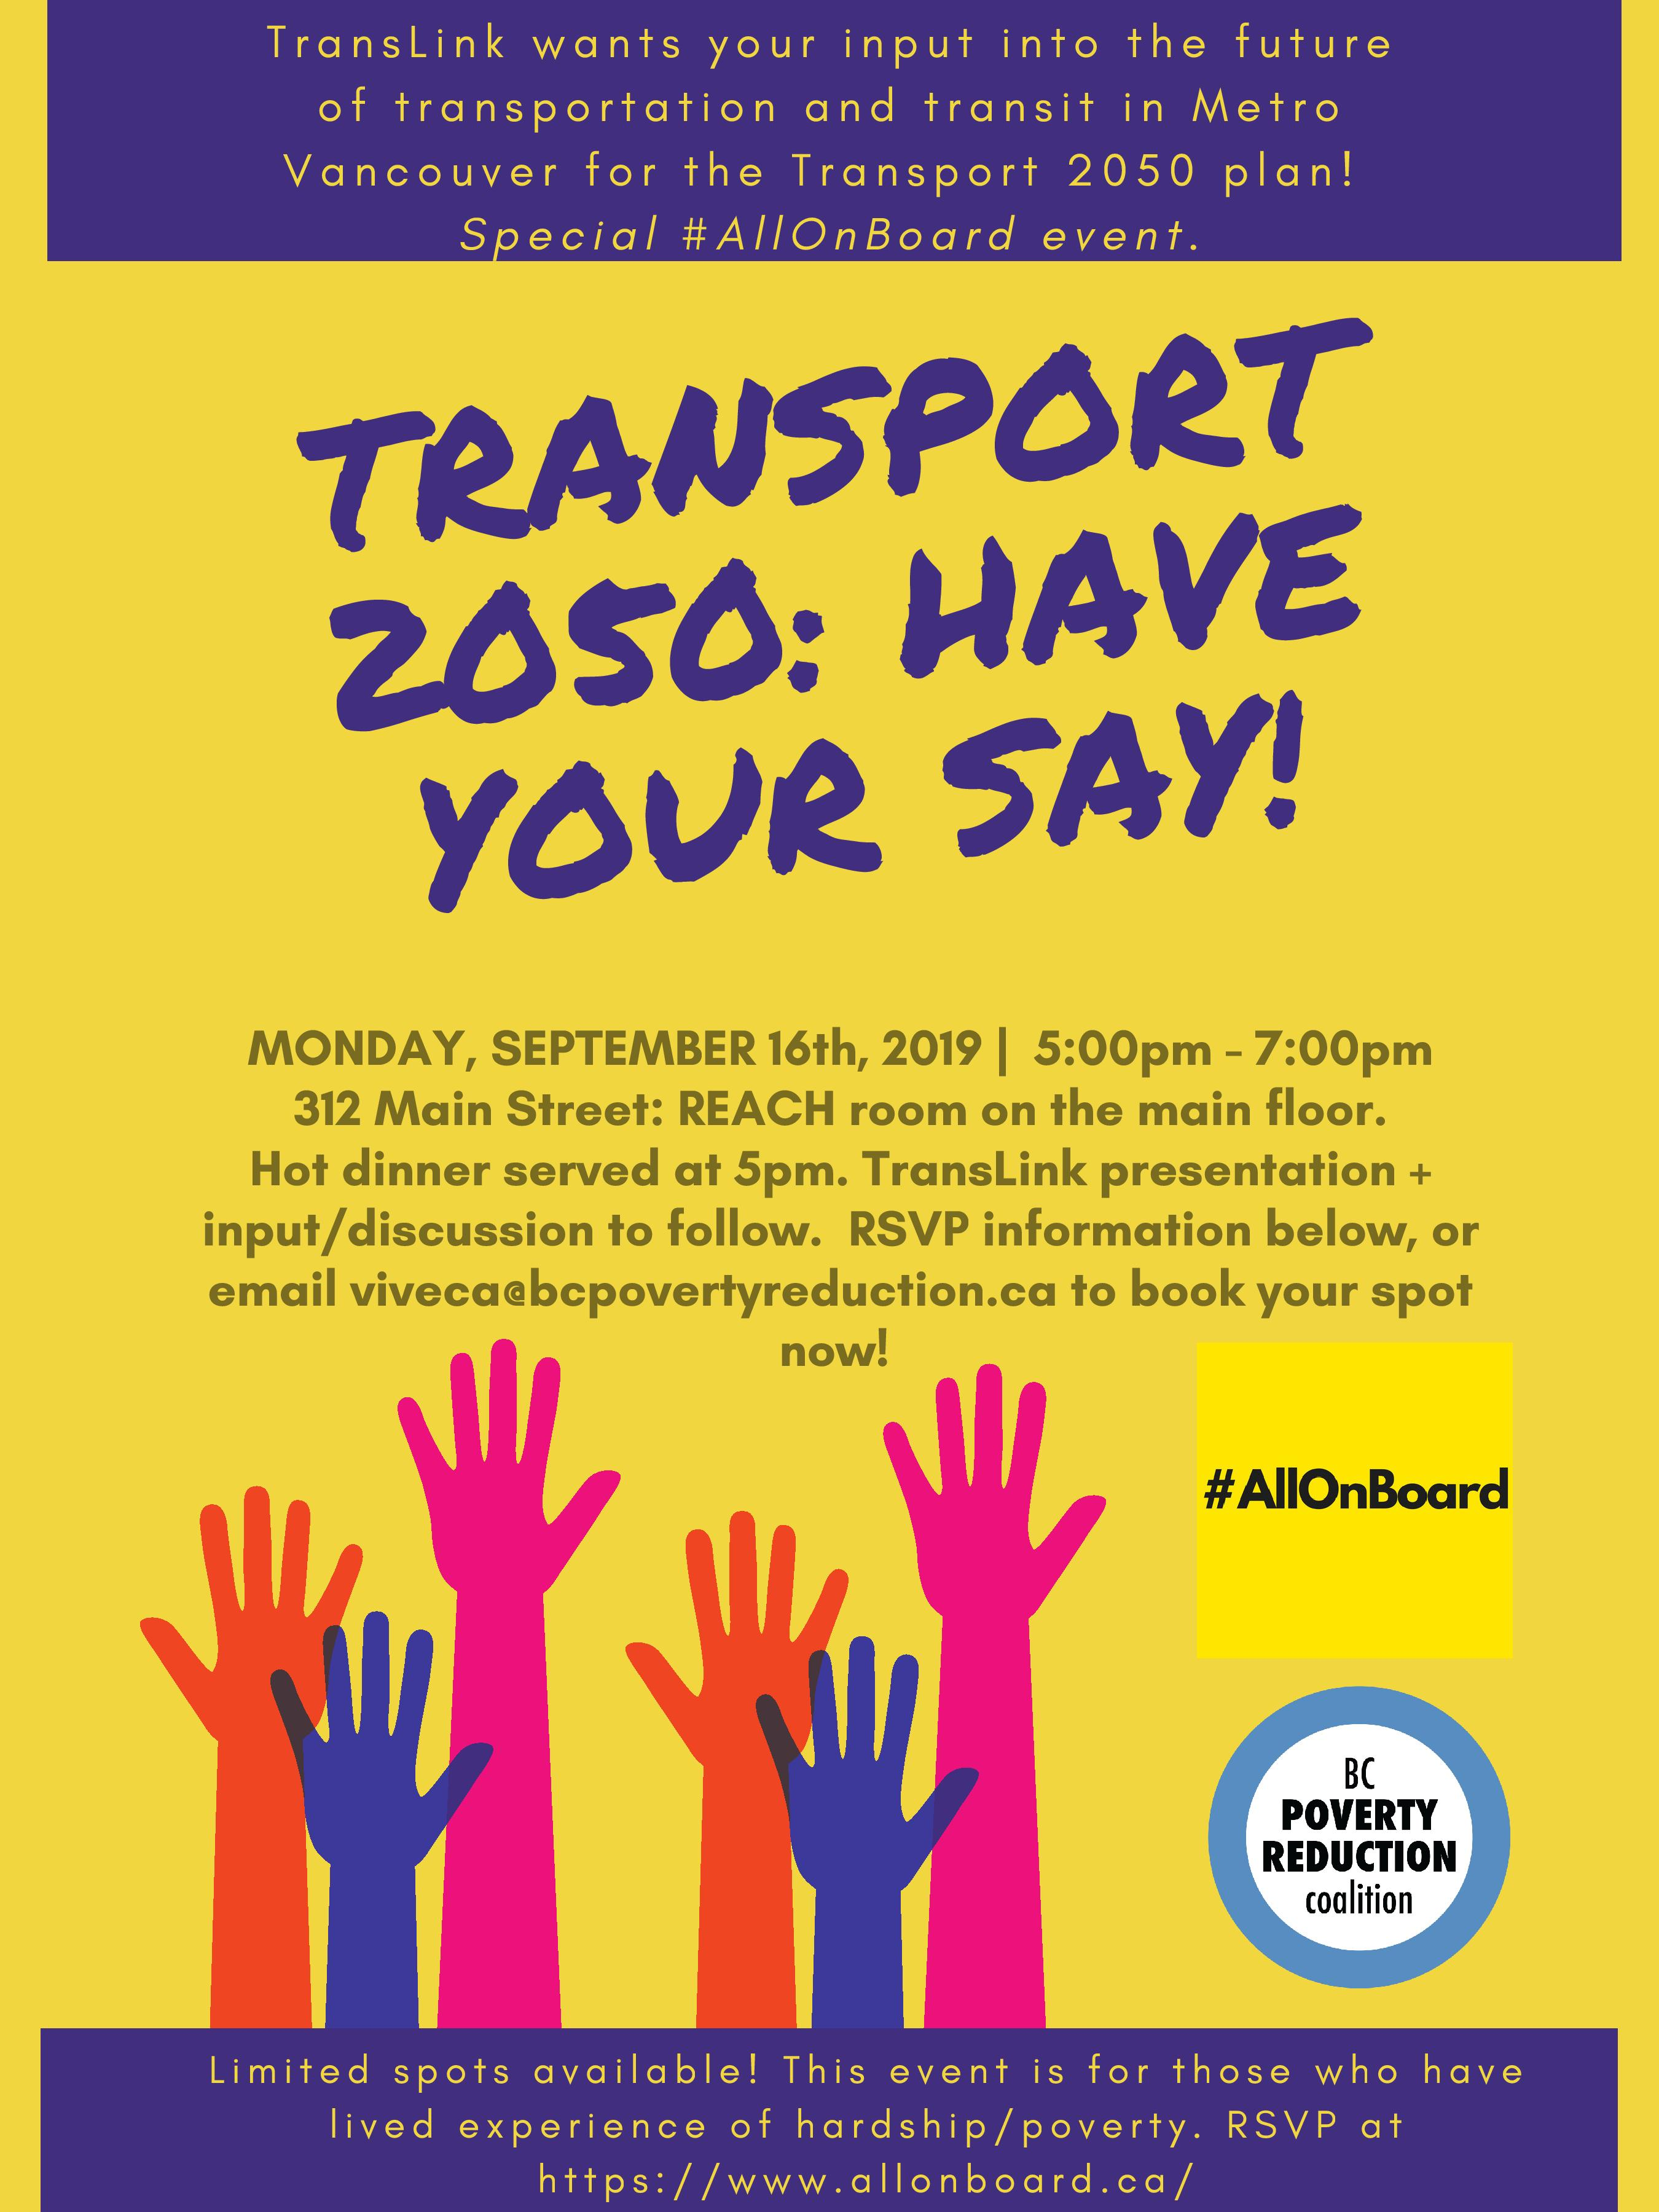 FINAL Transport 2050_ have your say! (2).pdf FINAL-page-001.JPEG FINAL